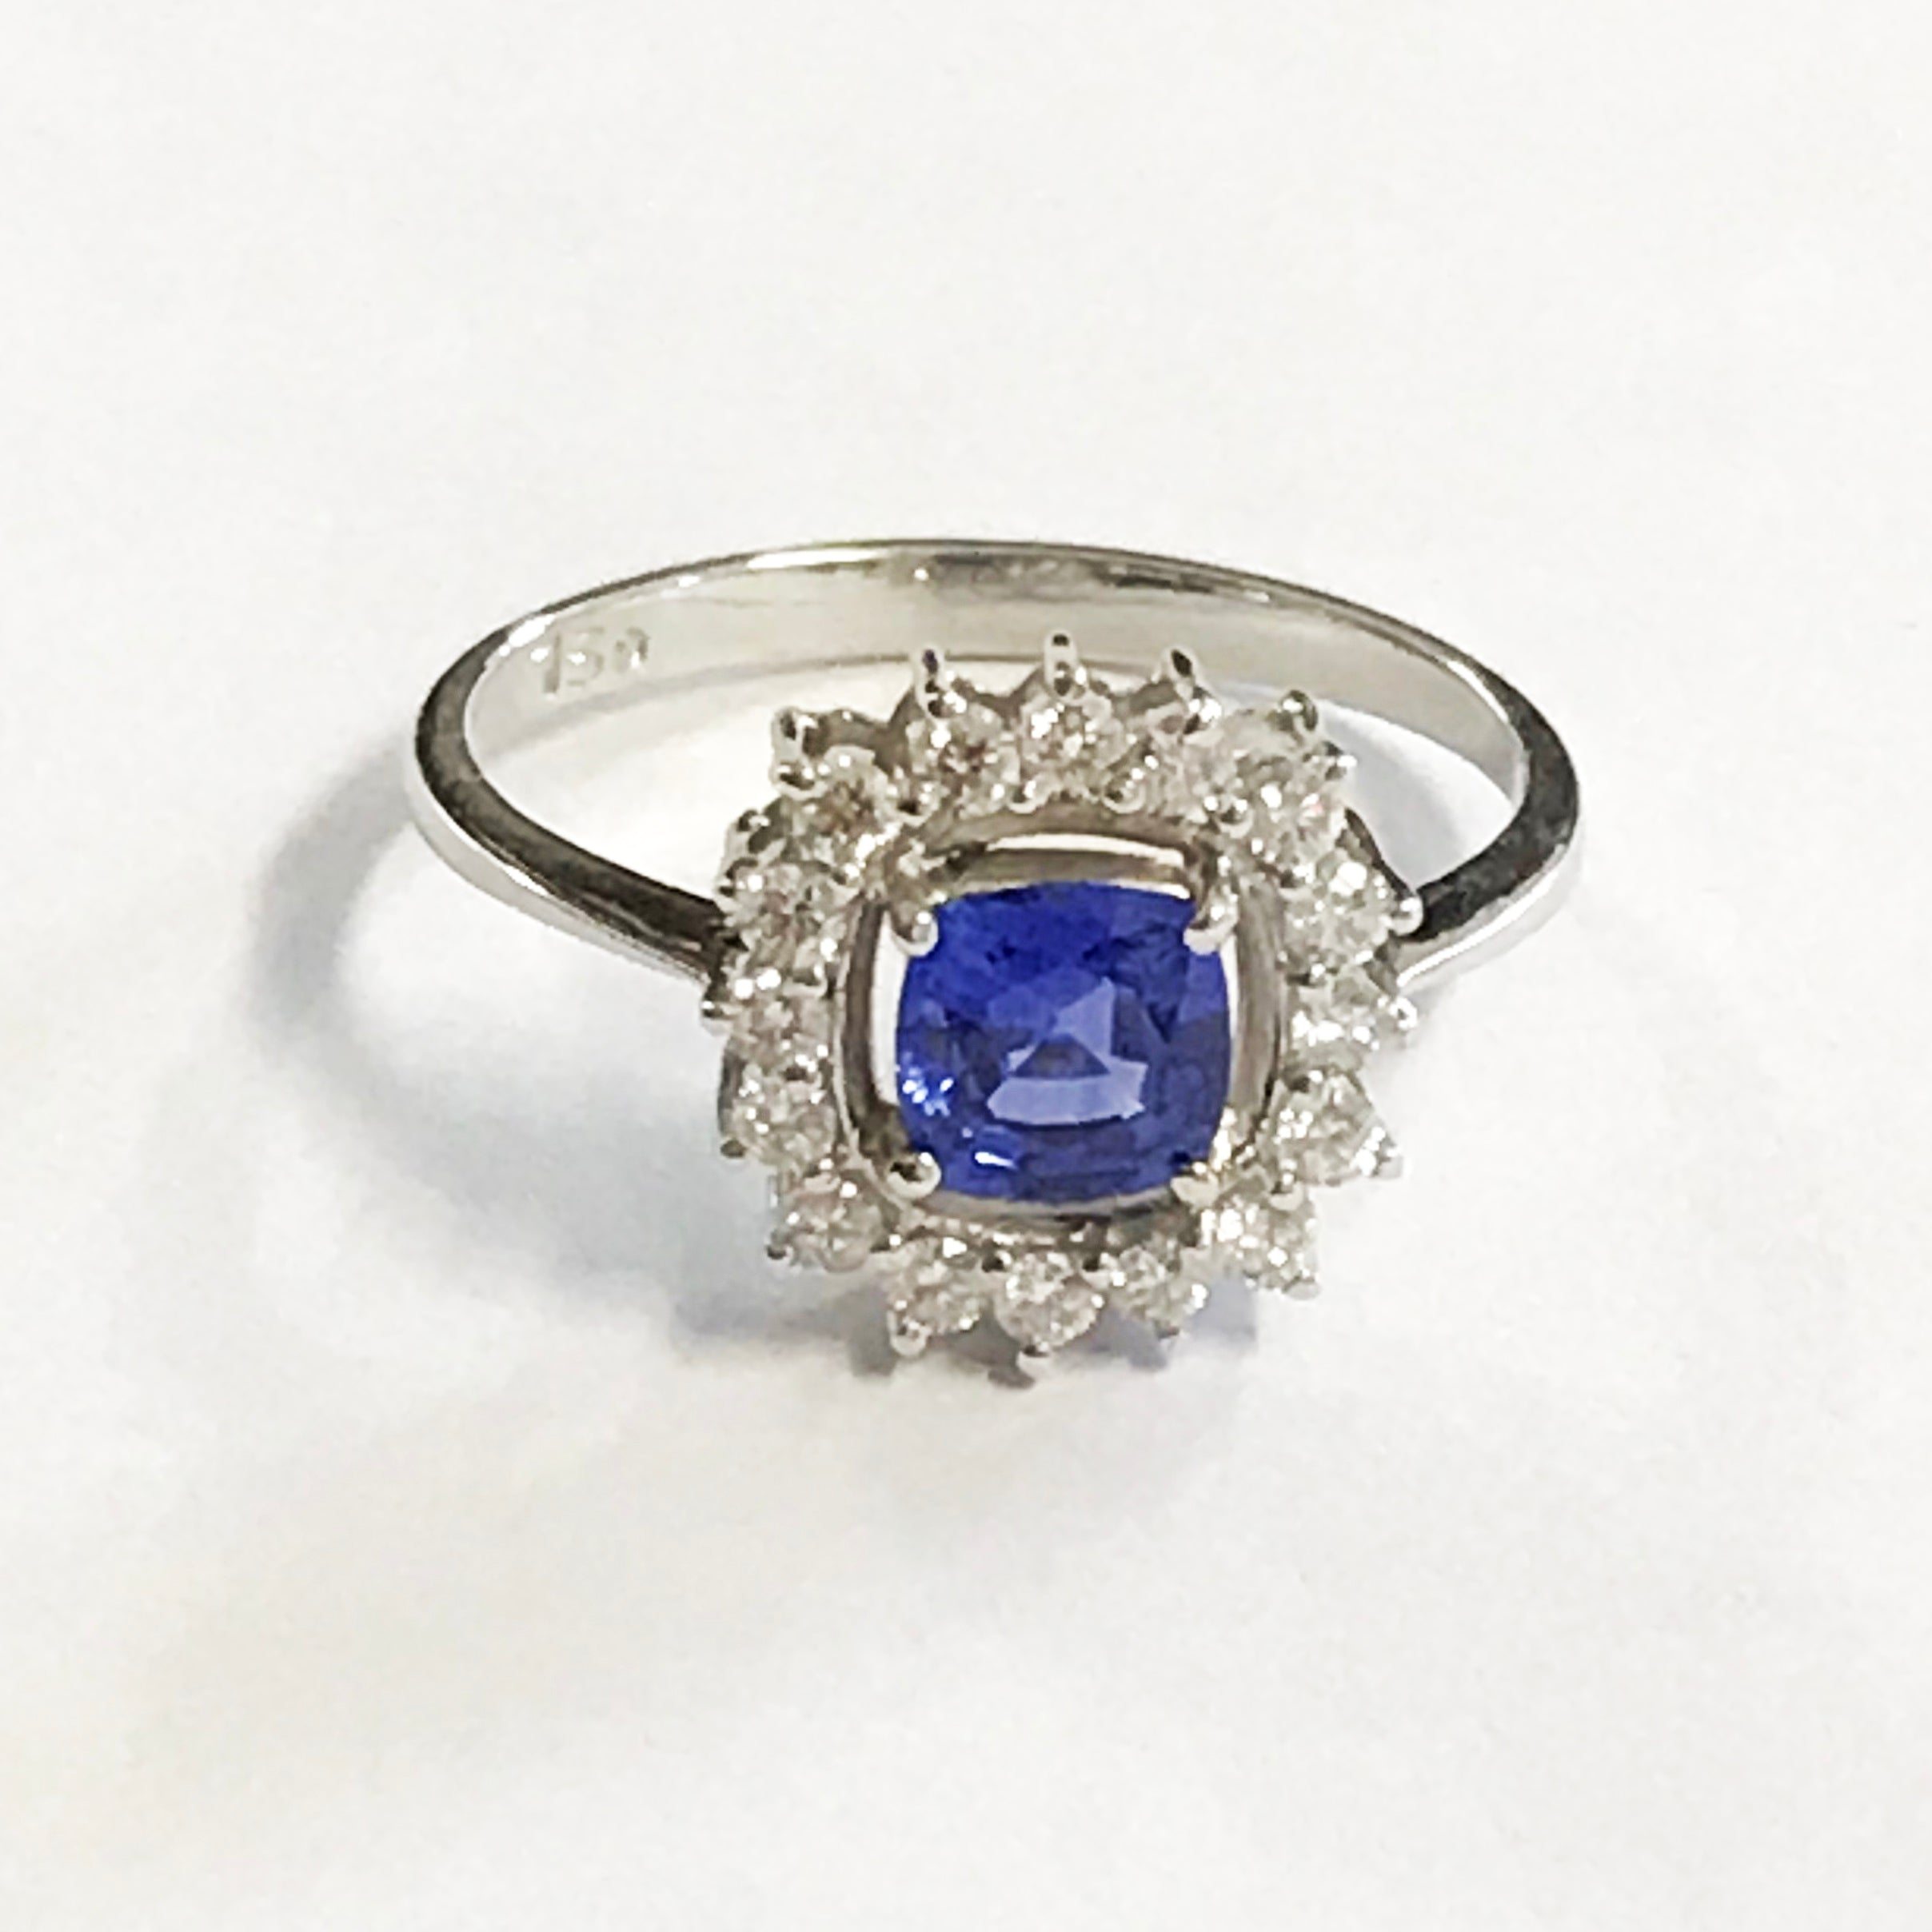 a sapphire ring gem white gold jewelry weight in total rings ct oval diamond engagement blue